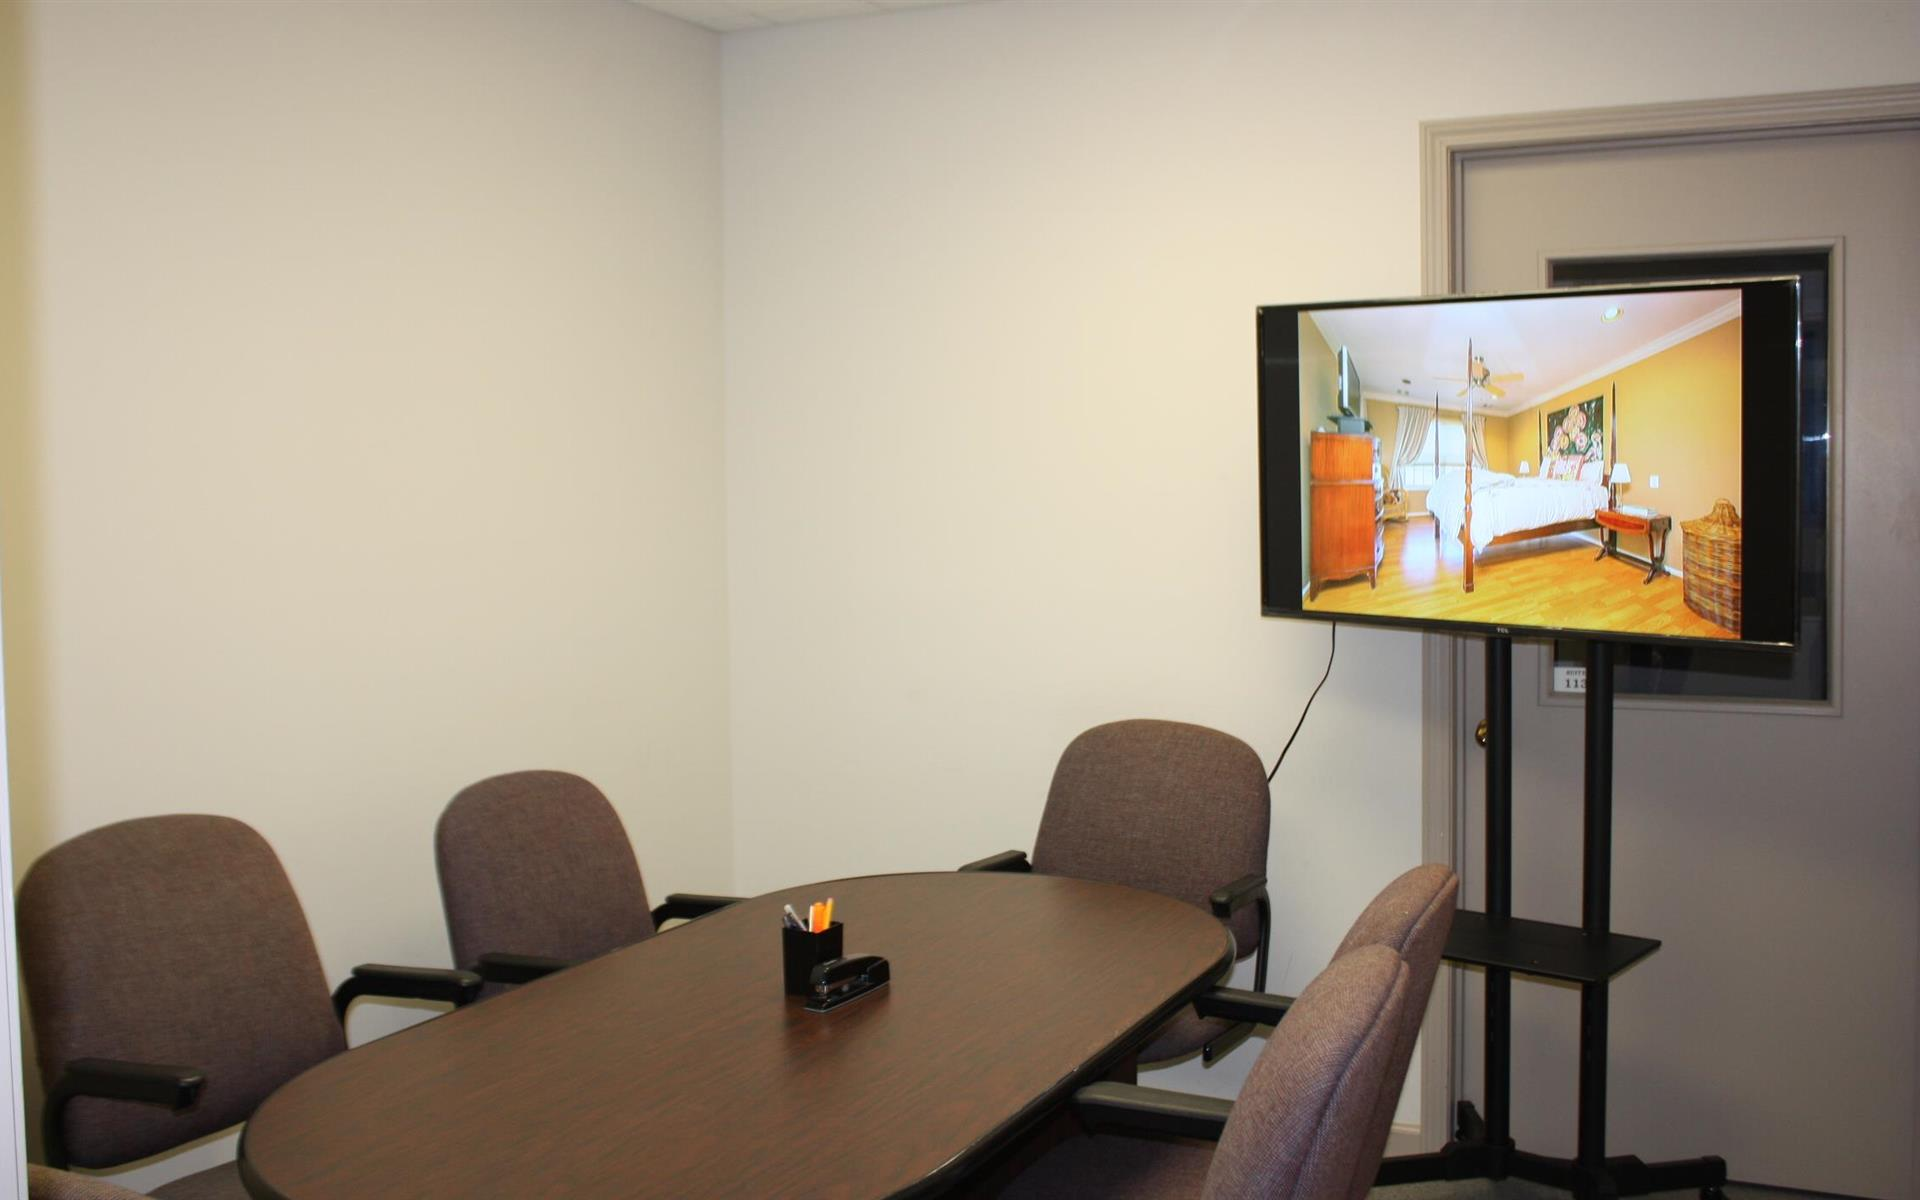 Offices and Coworking in Central NJ - Metuchen, NJ - Conference Room: up to 6 people (#105)